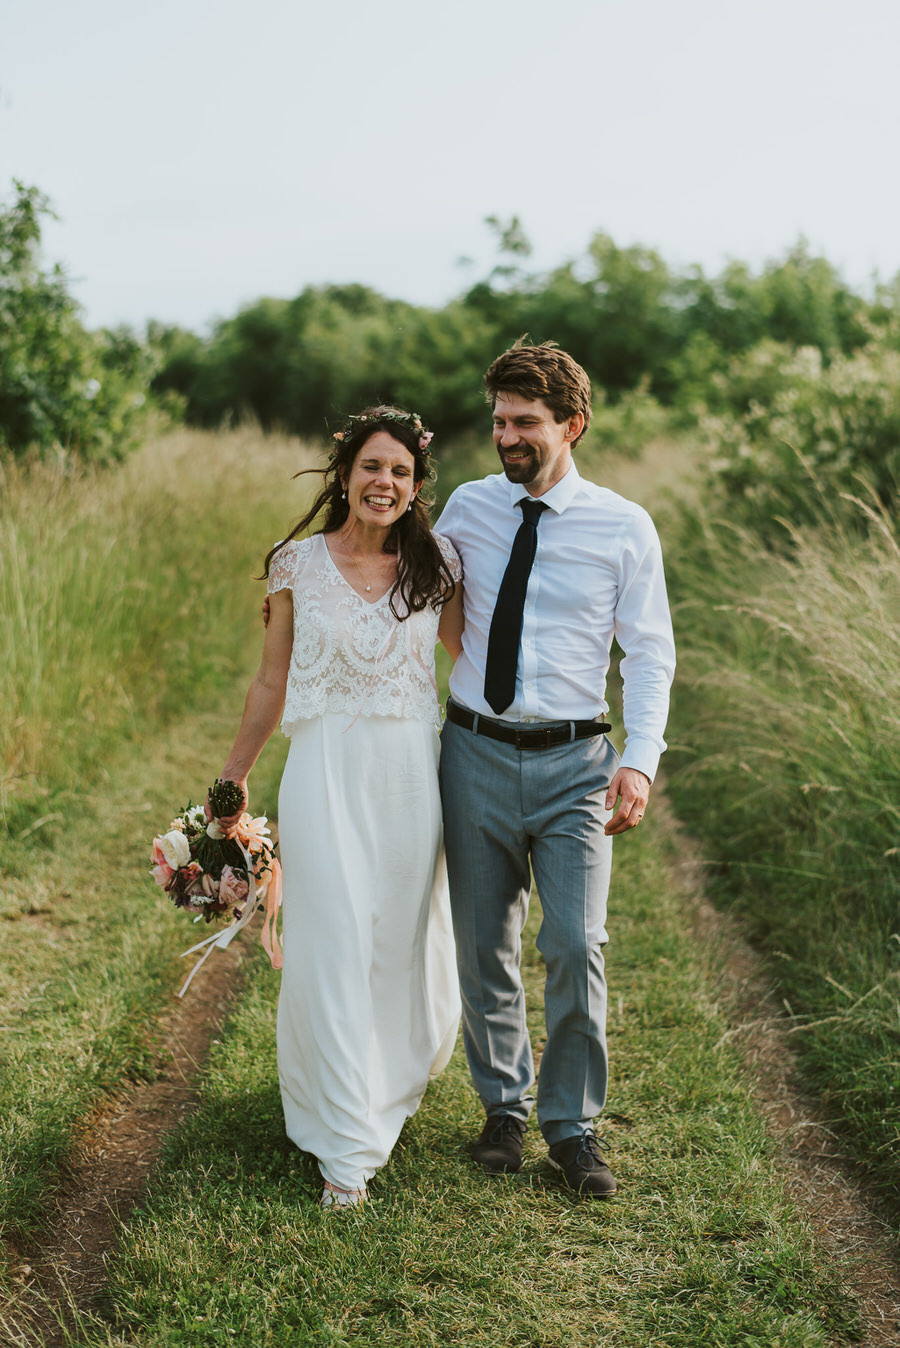 Lizzie & Eddy's beautiful Temple of Minerva and Farm Camp wedding, with Simon Biffen Photography (30)